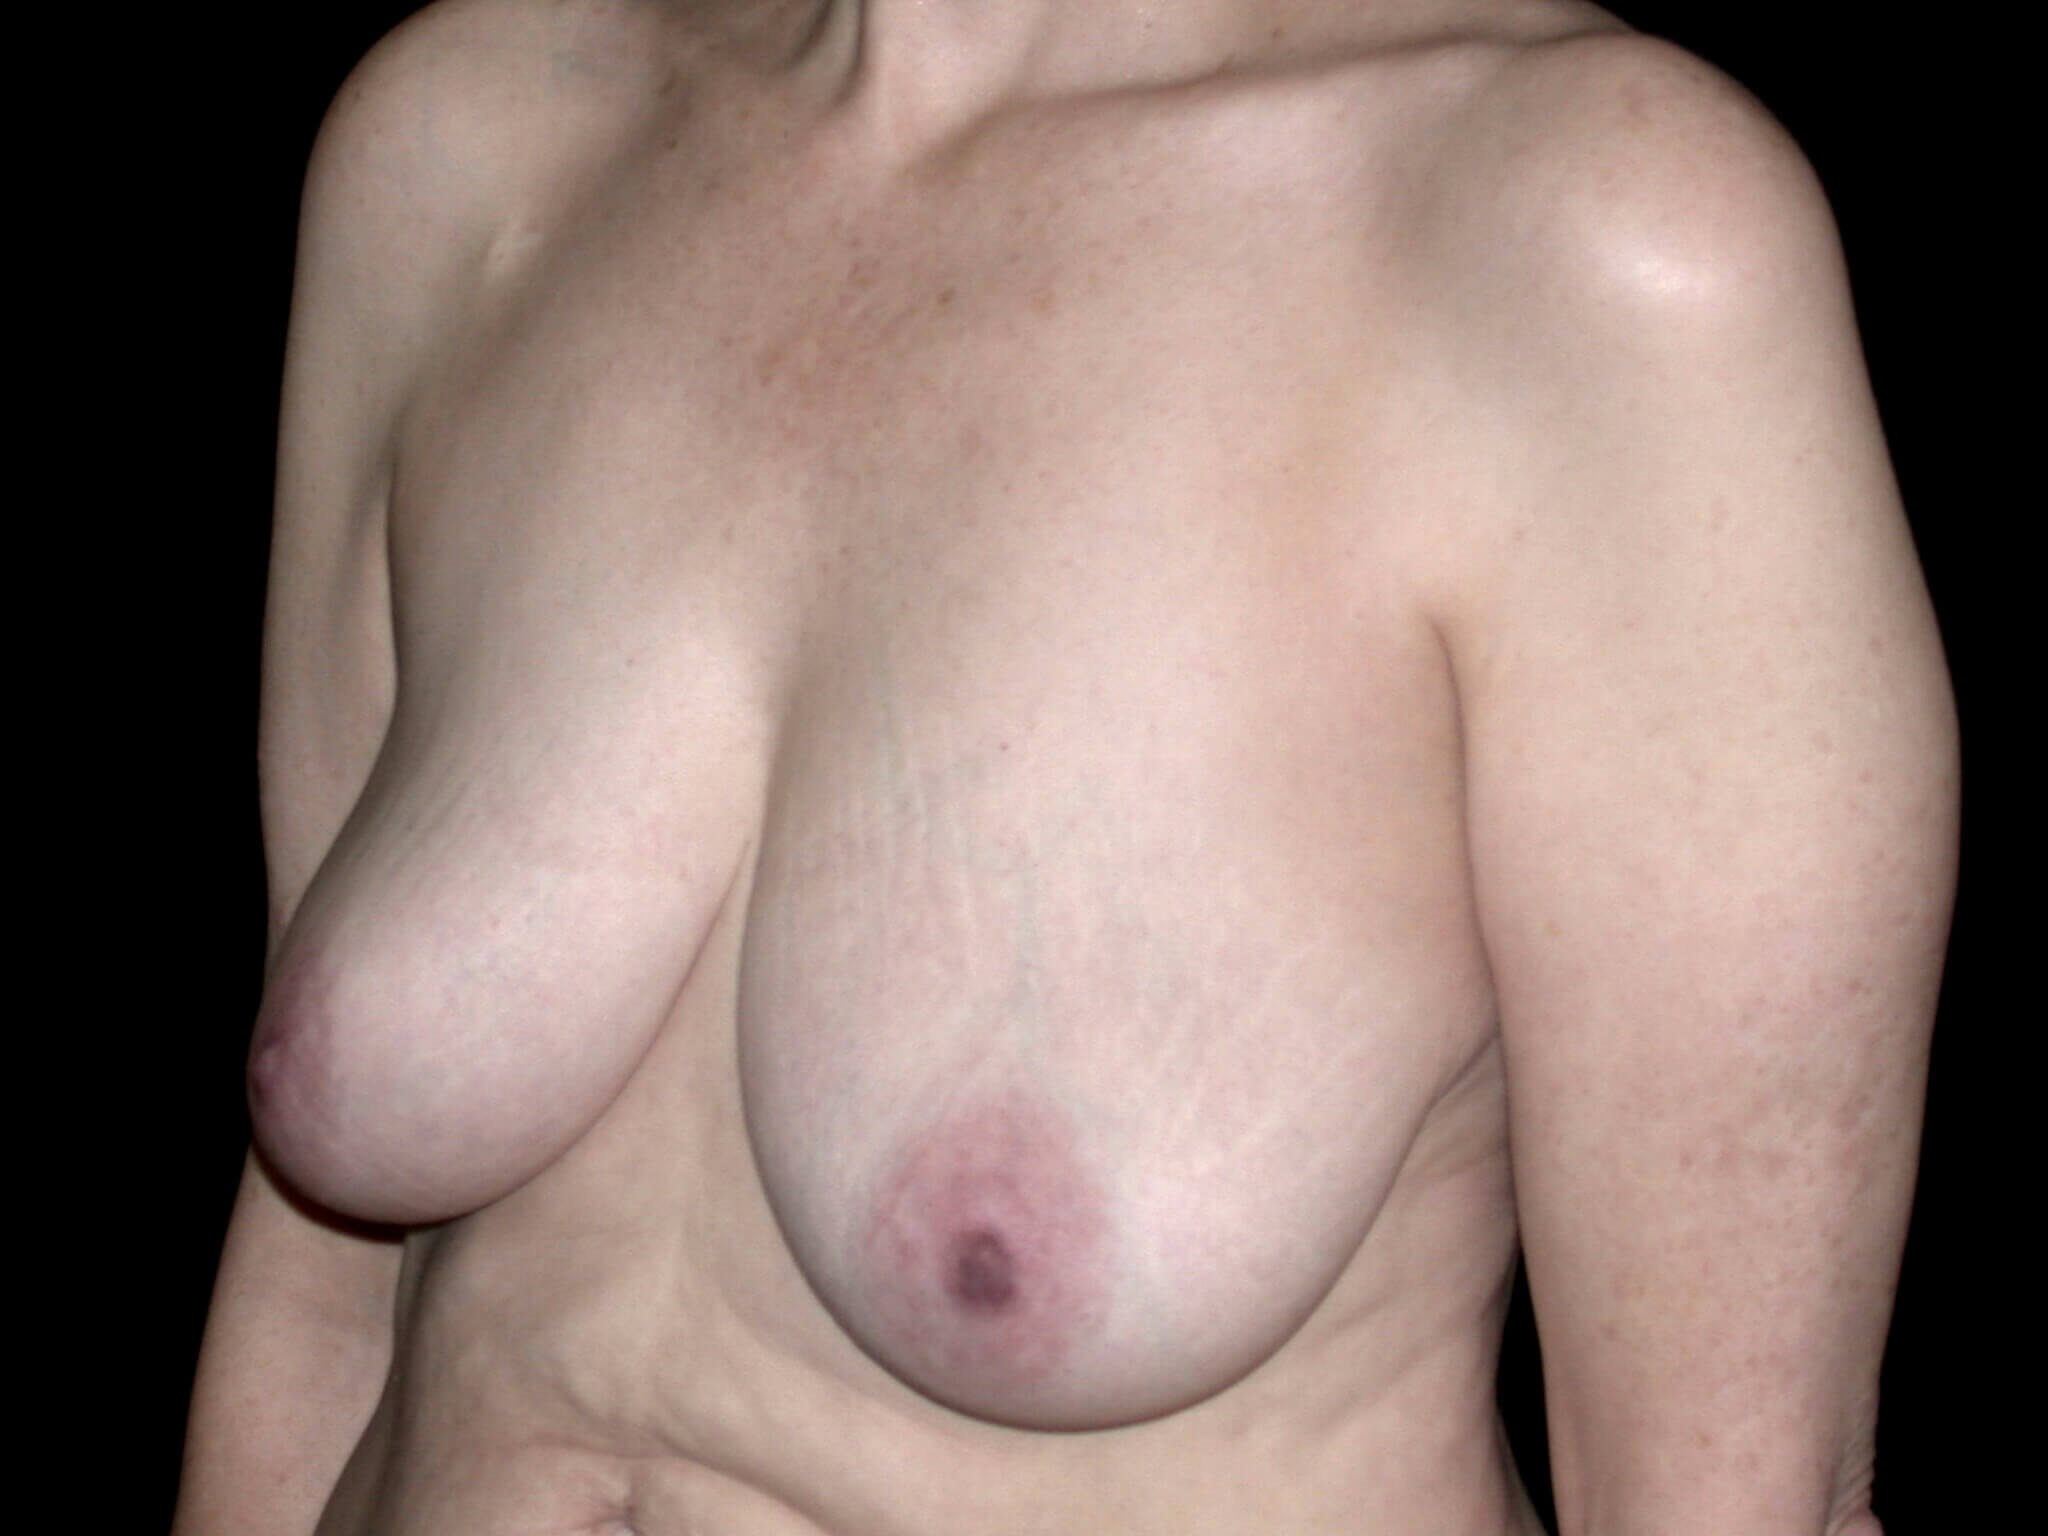 DALLAS WOMAN HAS BREAST LIFT SURGERY